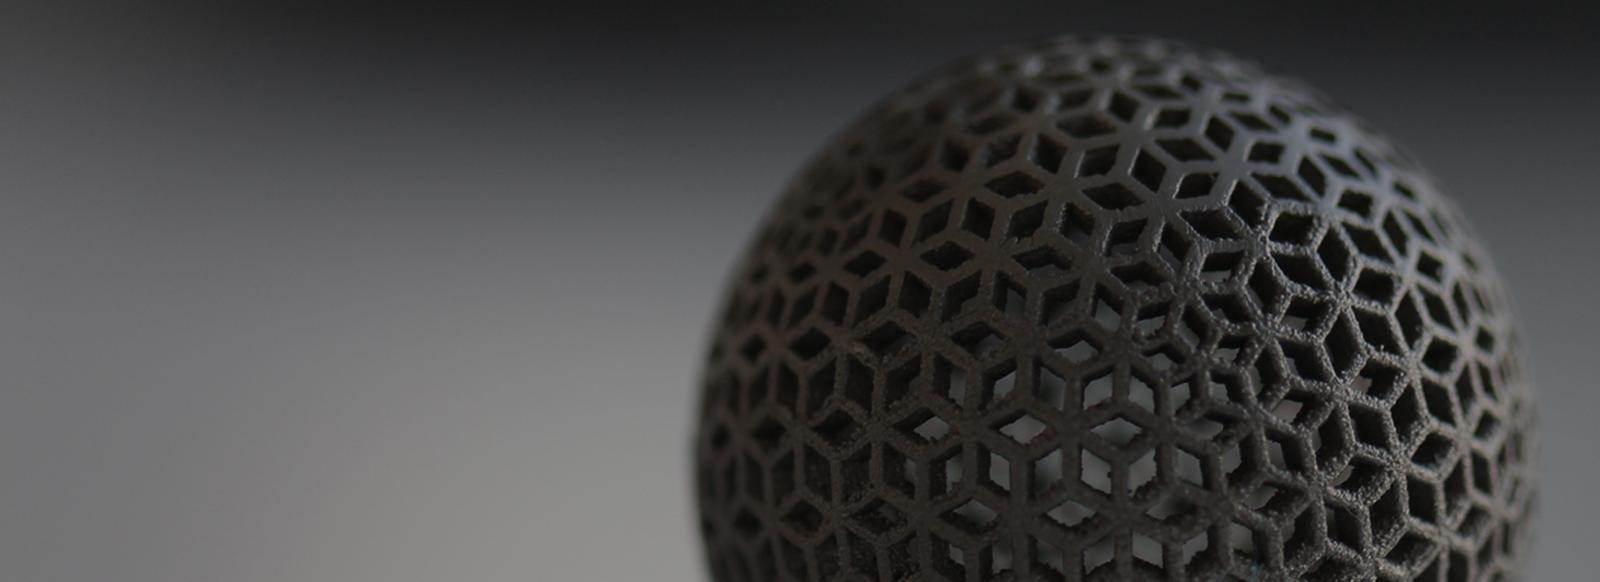 3-d printed / additive manufacturing black sphere